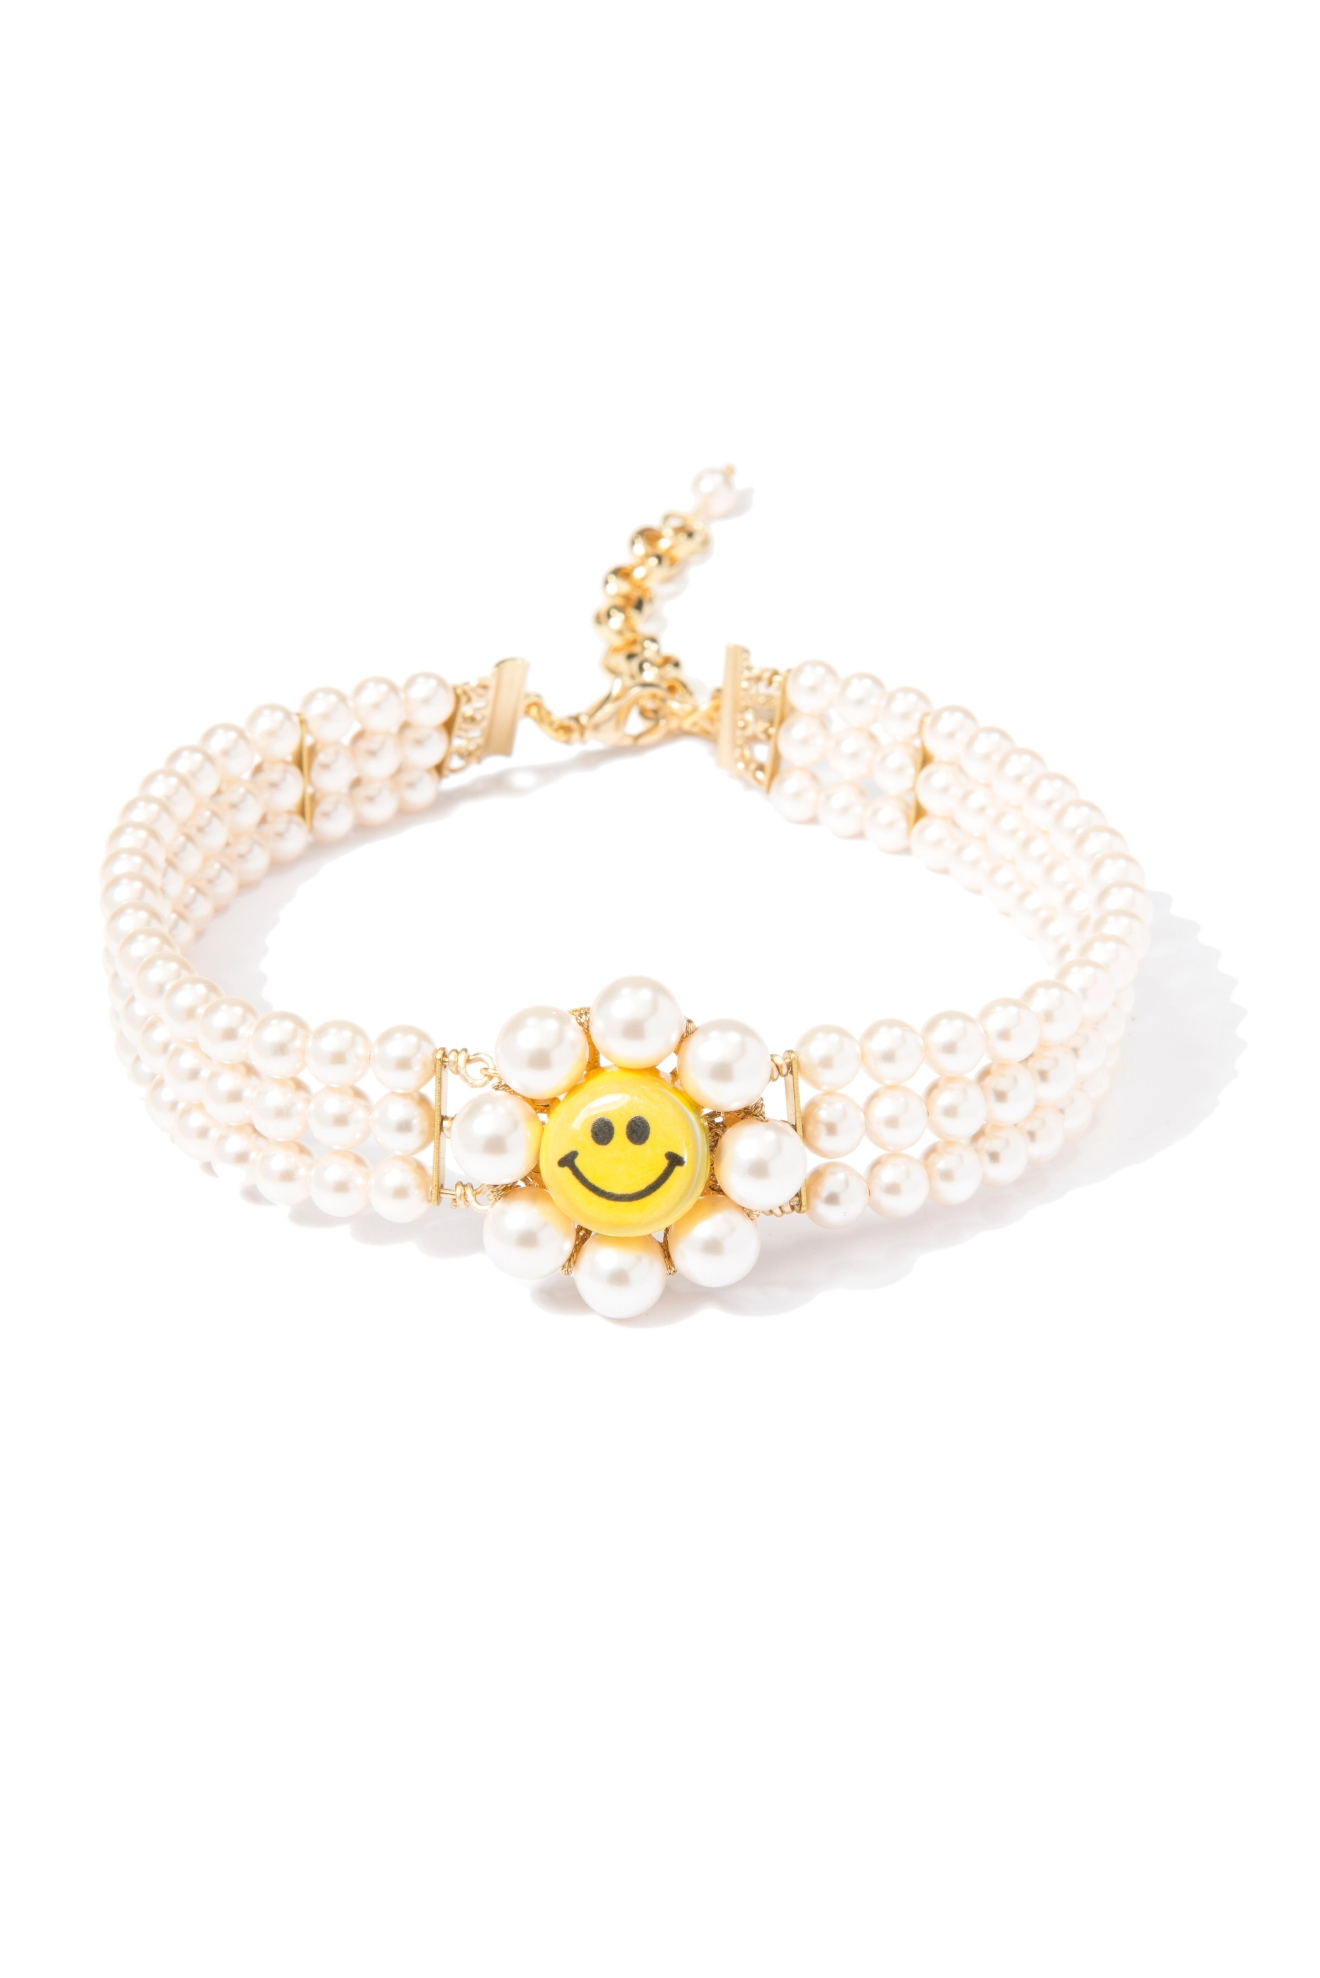 Venessa Arizaga Flower Power Pearl Choker - $230. Buy at shop.nordstrom.com/c/pop-in-olivia-kim (Image: Nordstrom)